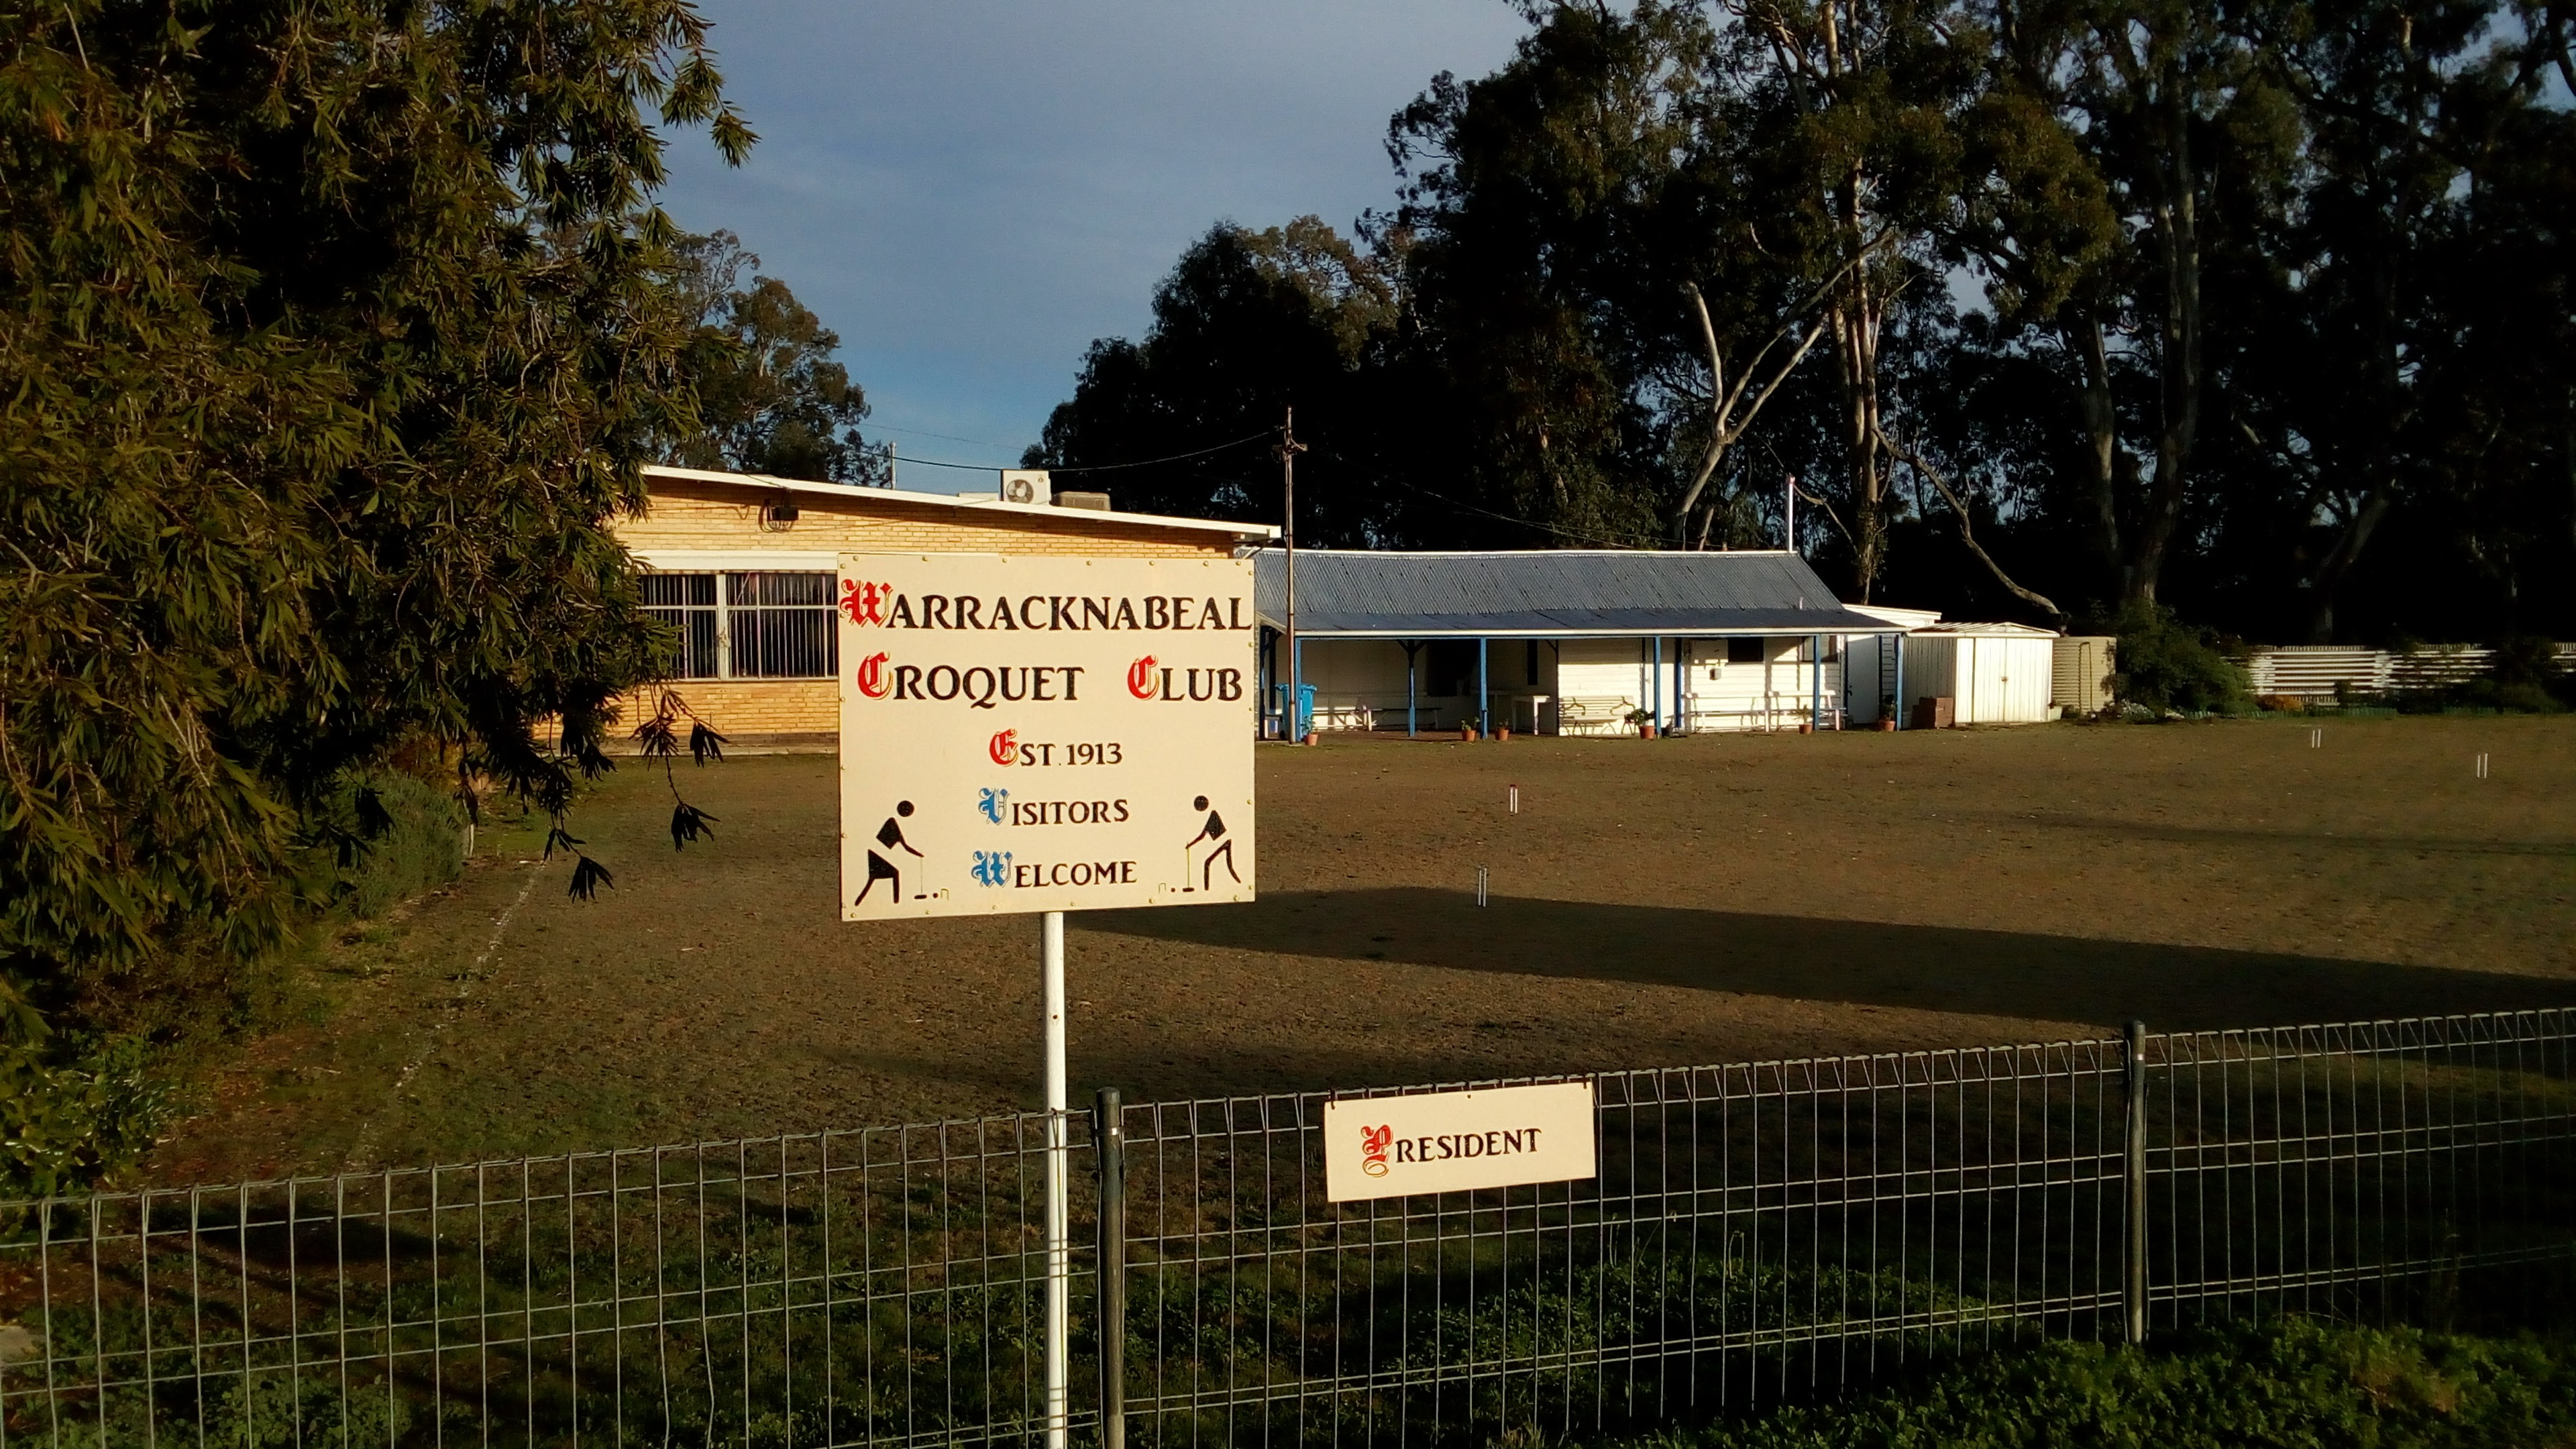 Warracknabeal Croquet Club